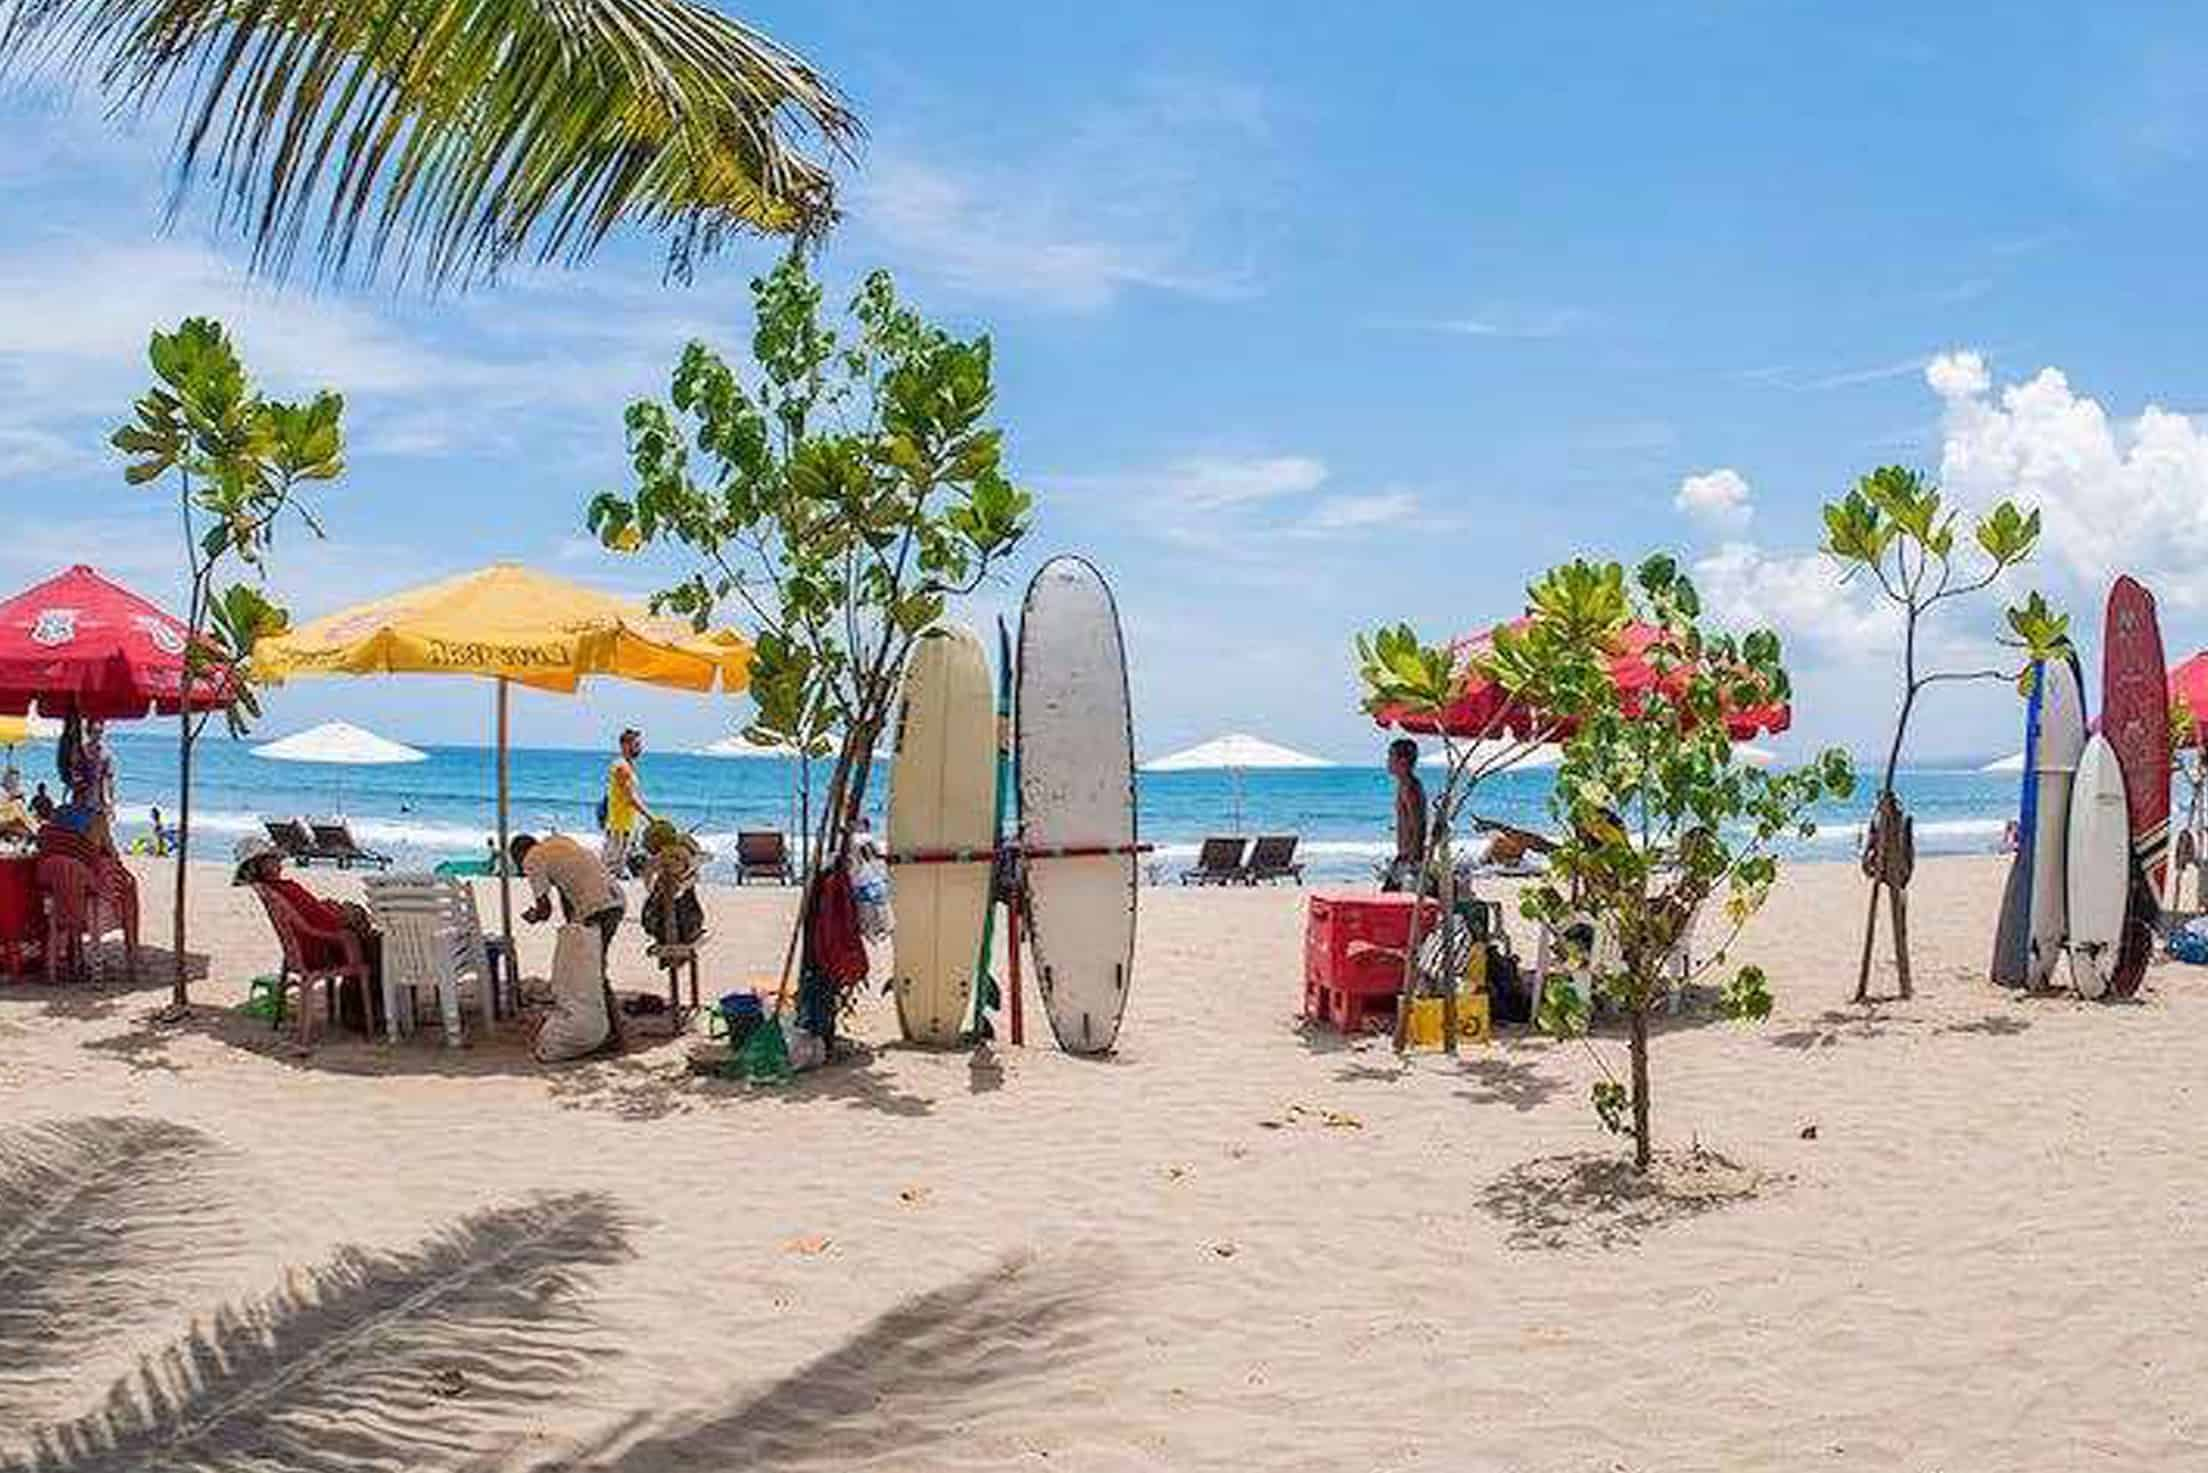 KUTA BEACH WILL OPEN ON JULY 9 WITH NEW NORMAL CHANGES